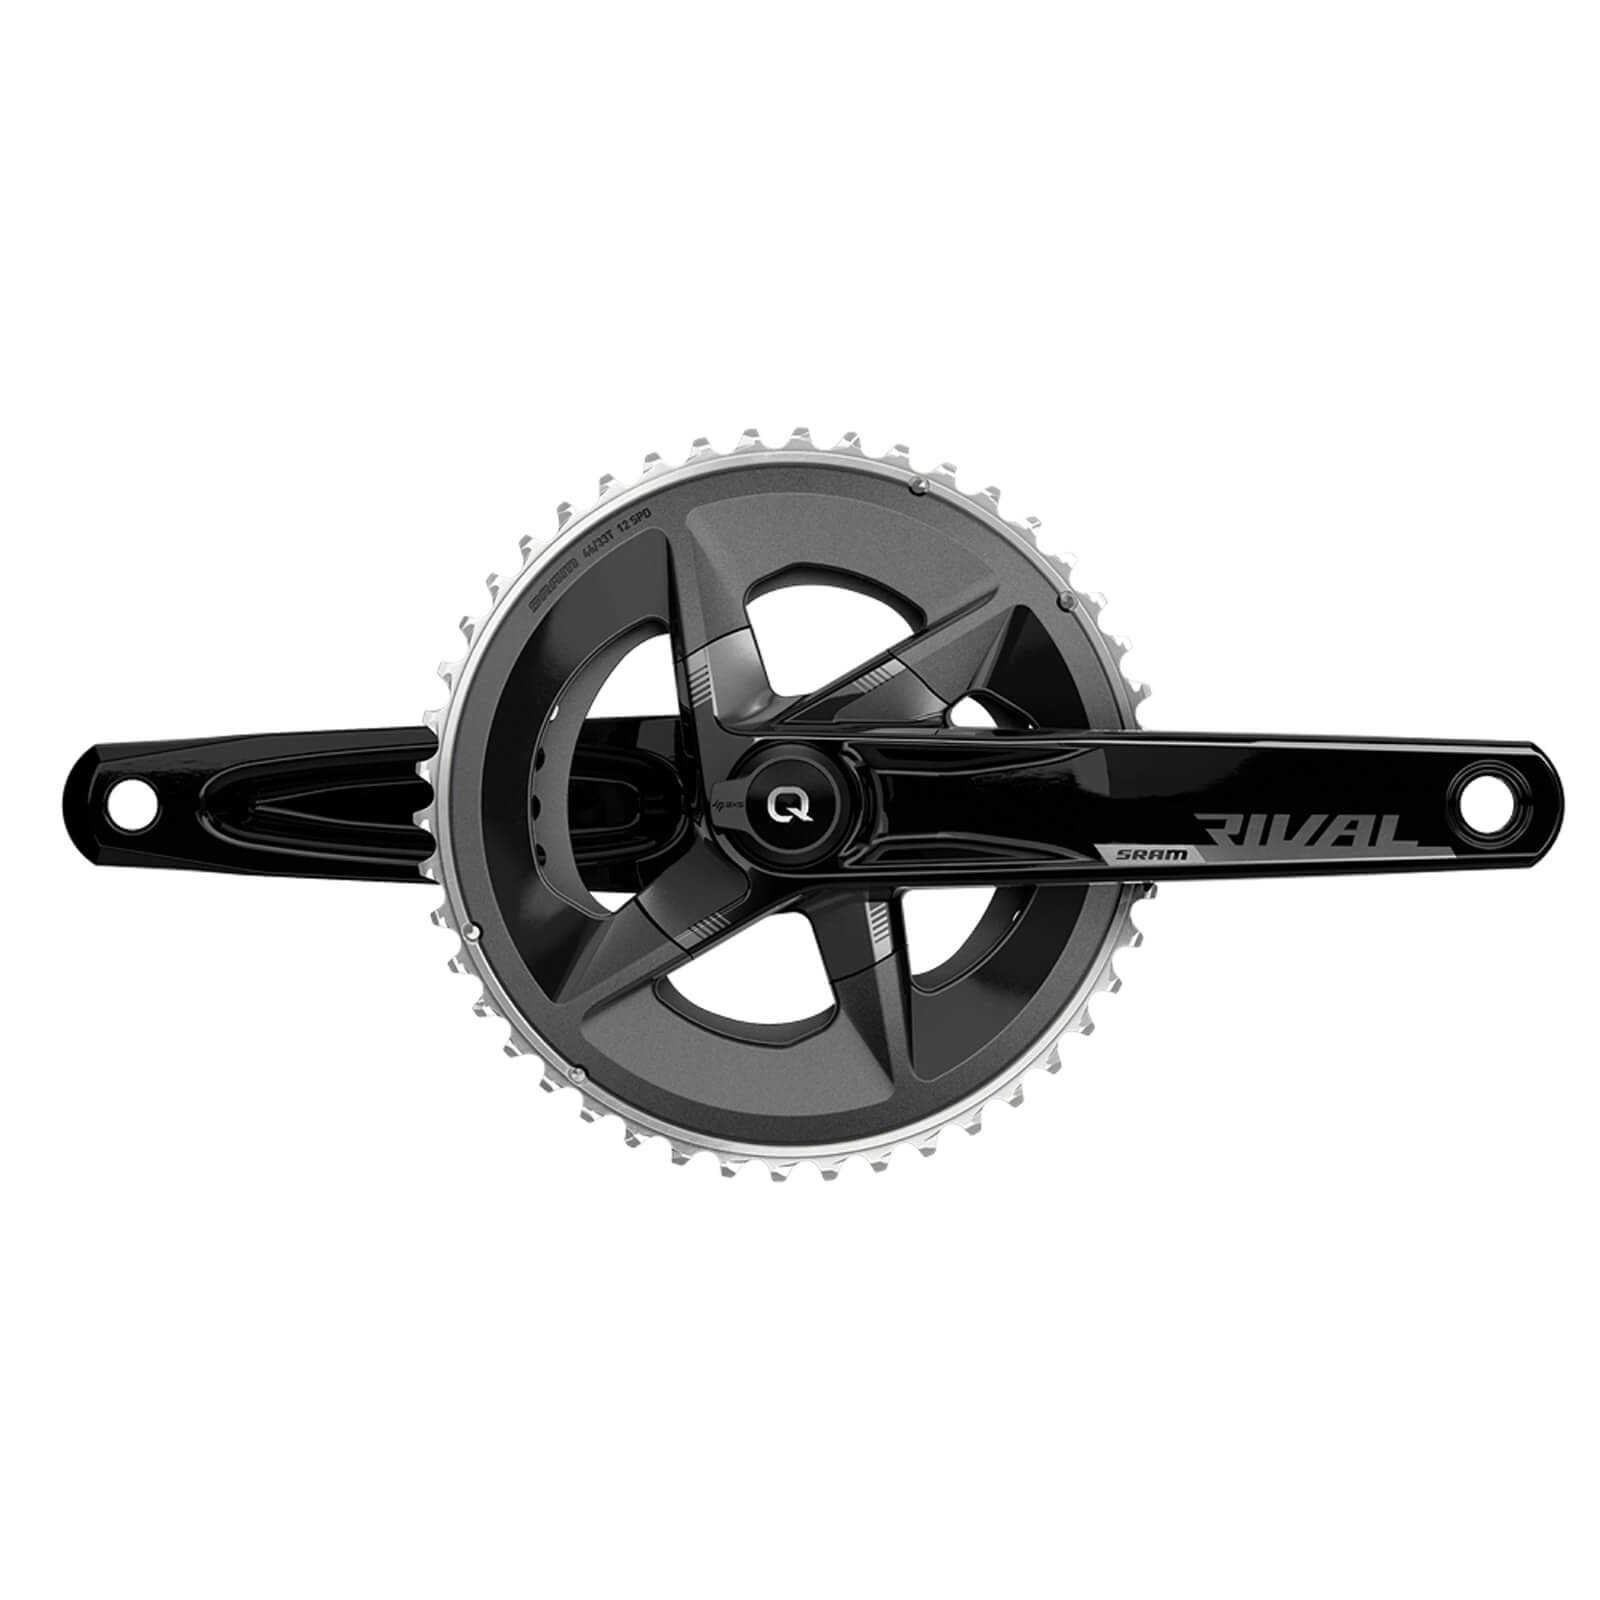 Sram Rival Axs Power Meter Chainset - 48/35 - 170mm